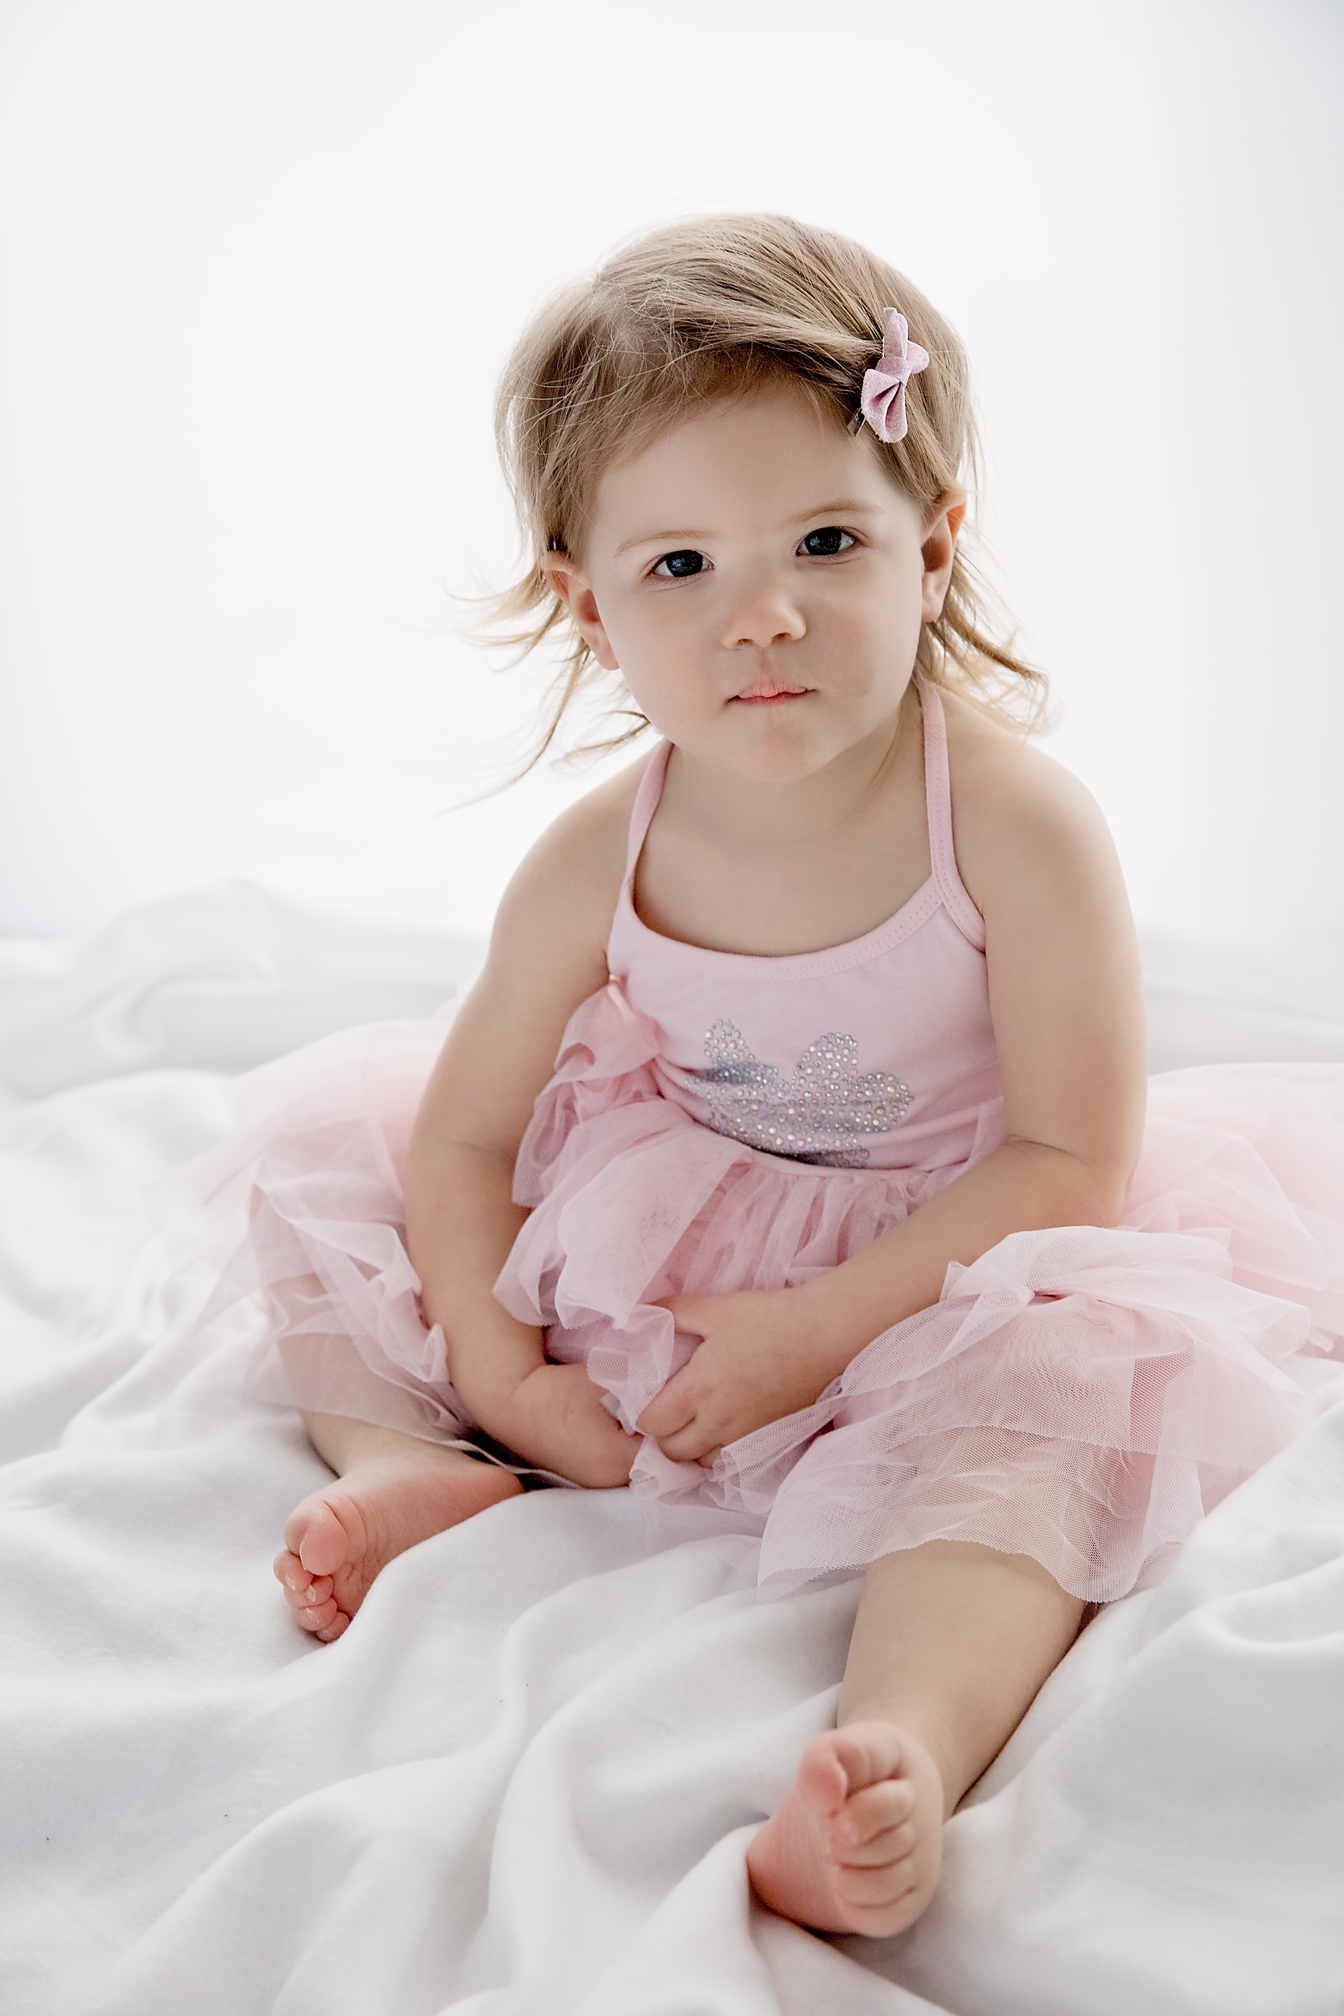 Ballerina dancer toddler girl photo